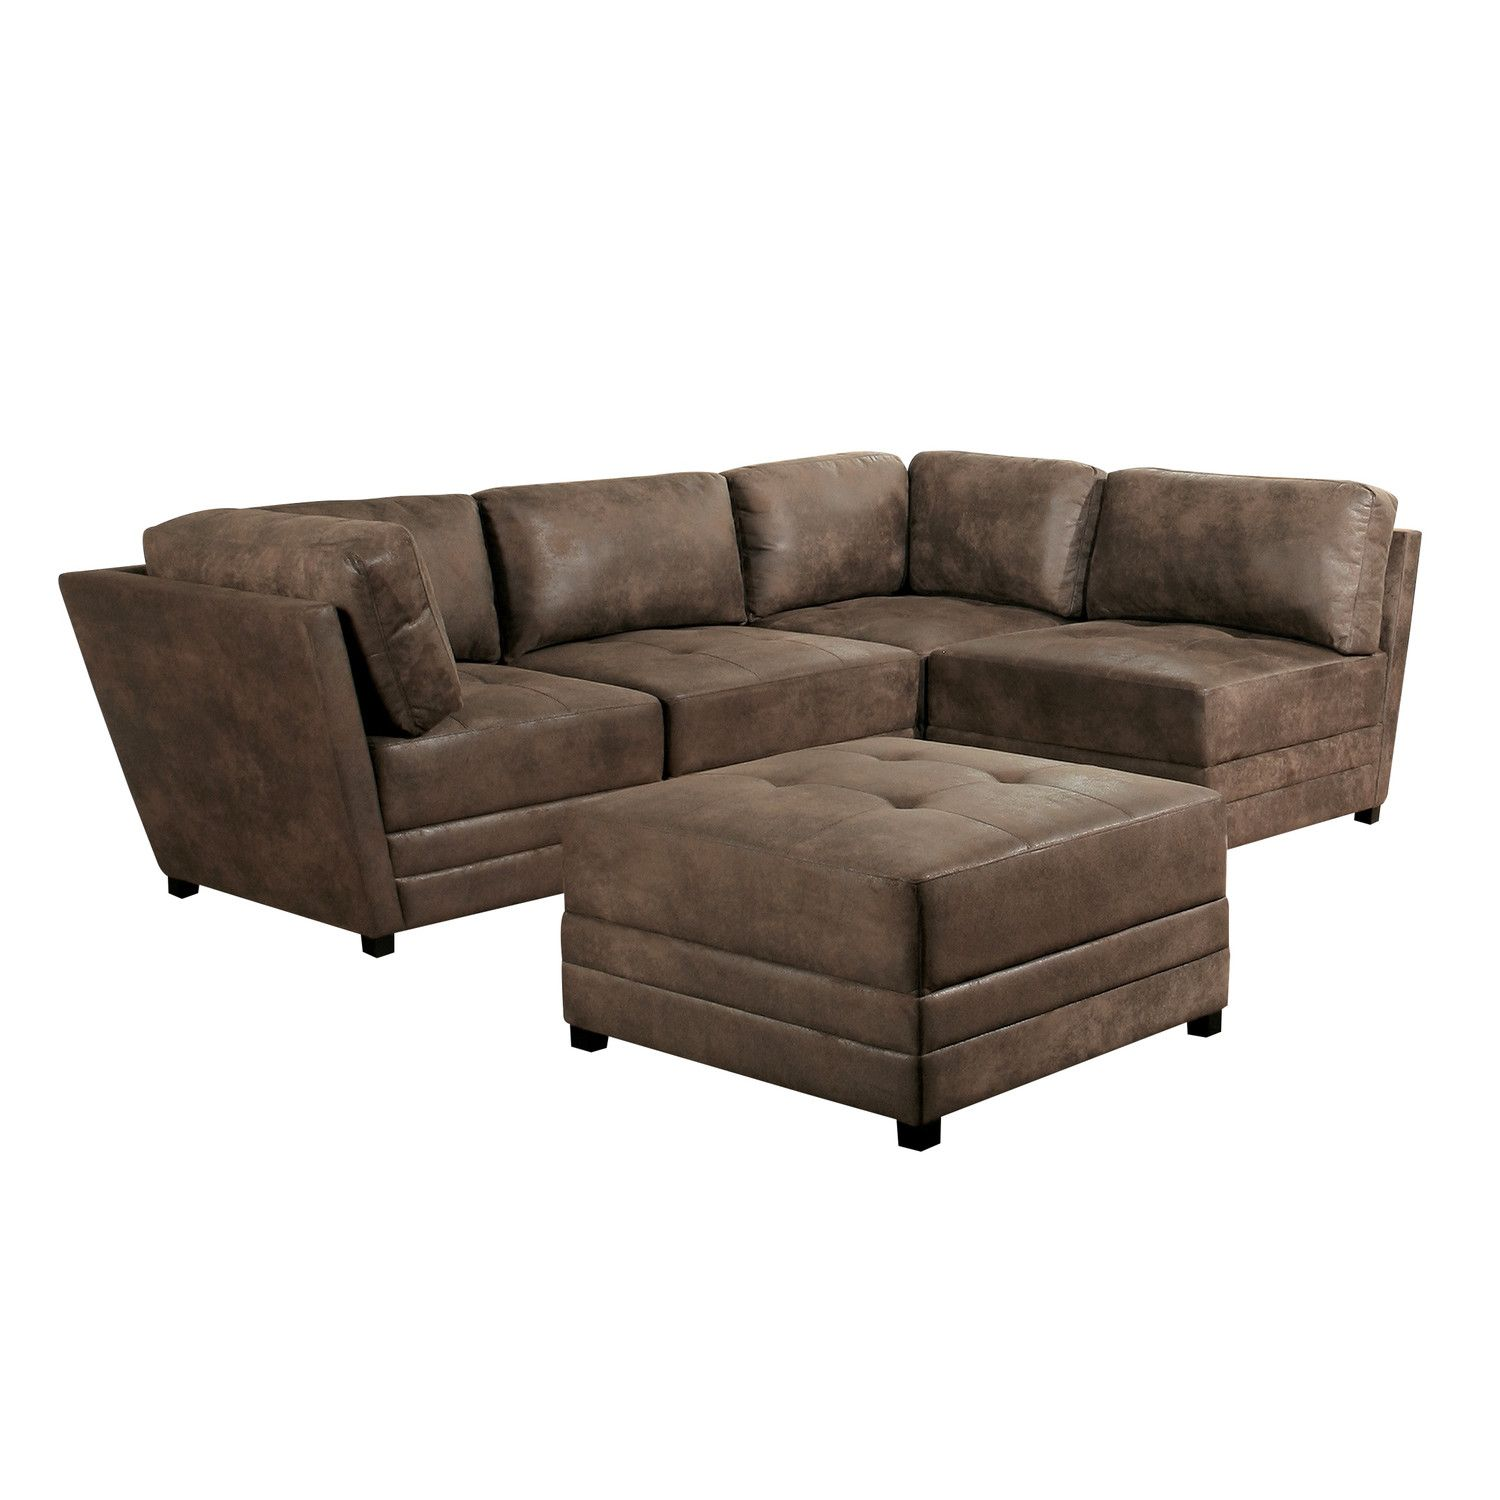 "Laredo 75"" Sectional Sofa & Ottoman"